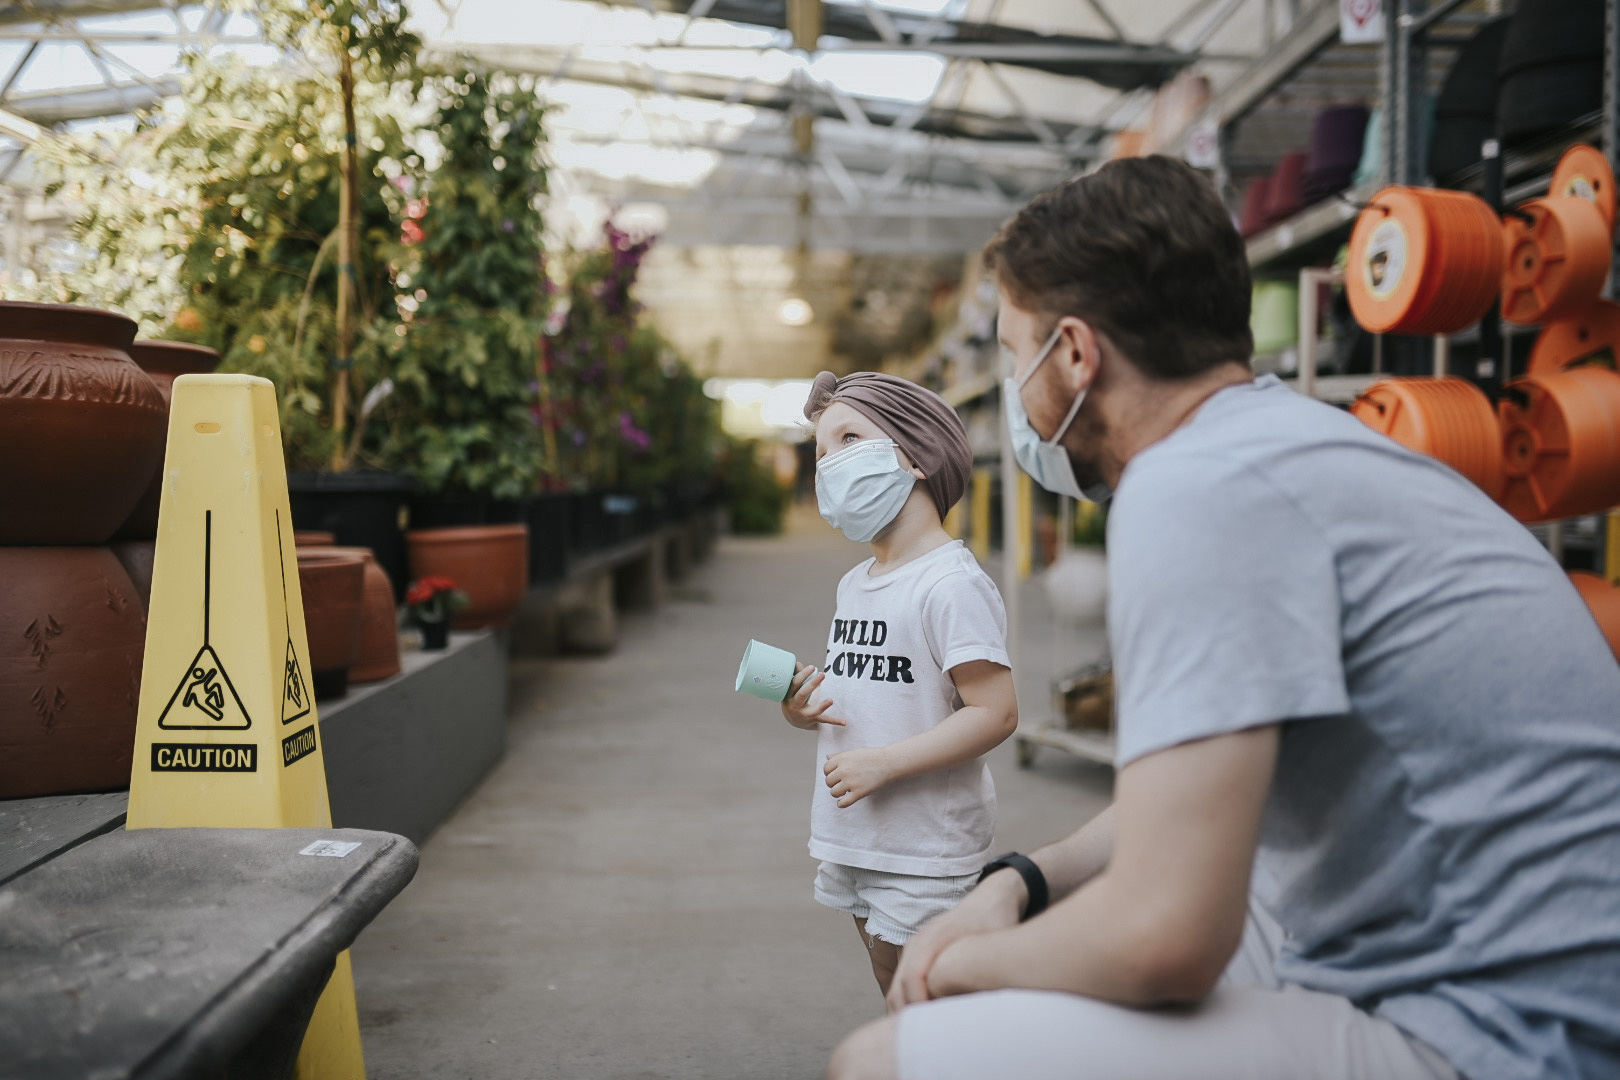 Parent and child with masks in garden store